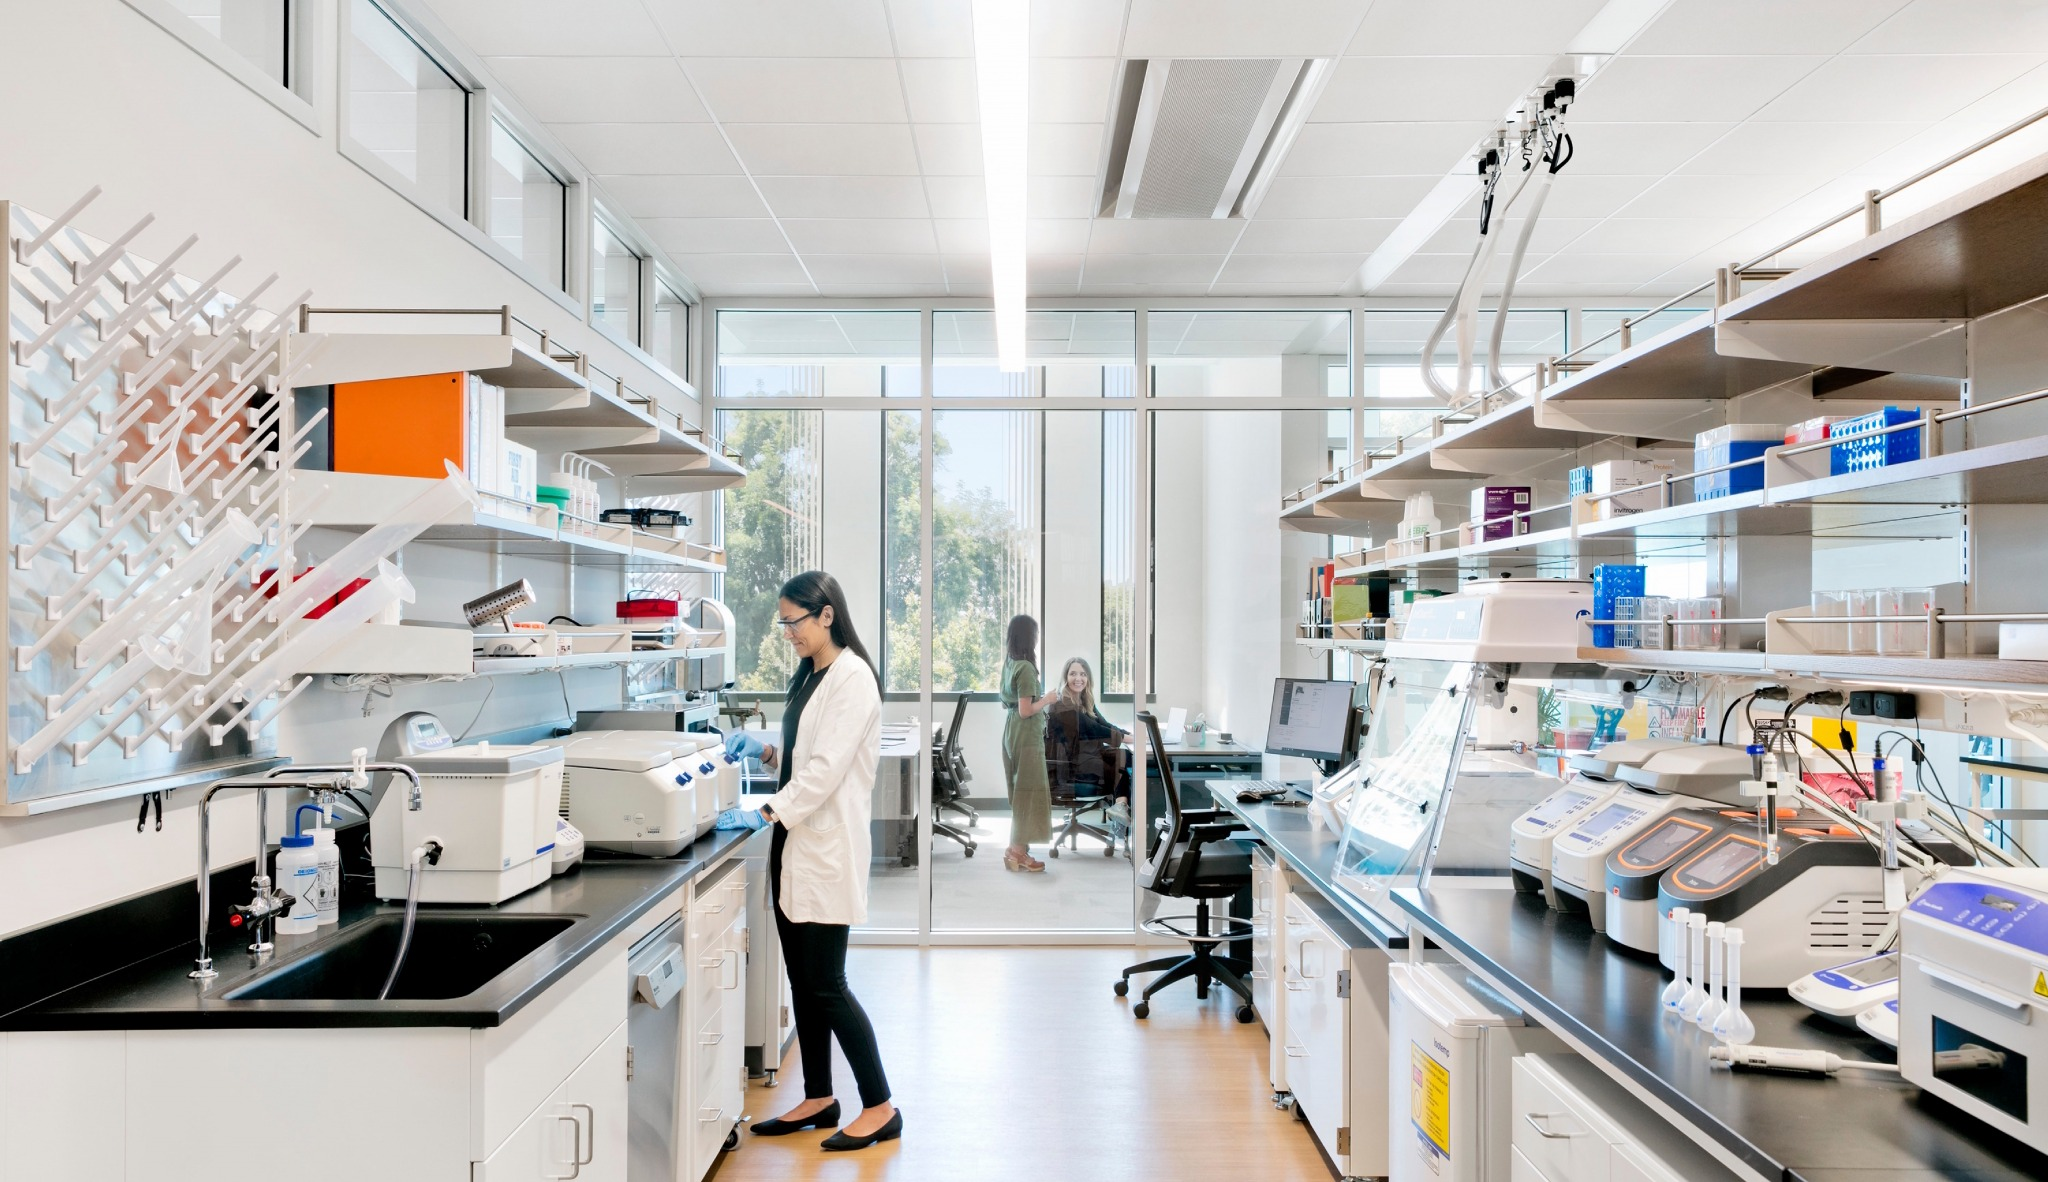 Research at The Lundquist Institute